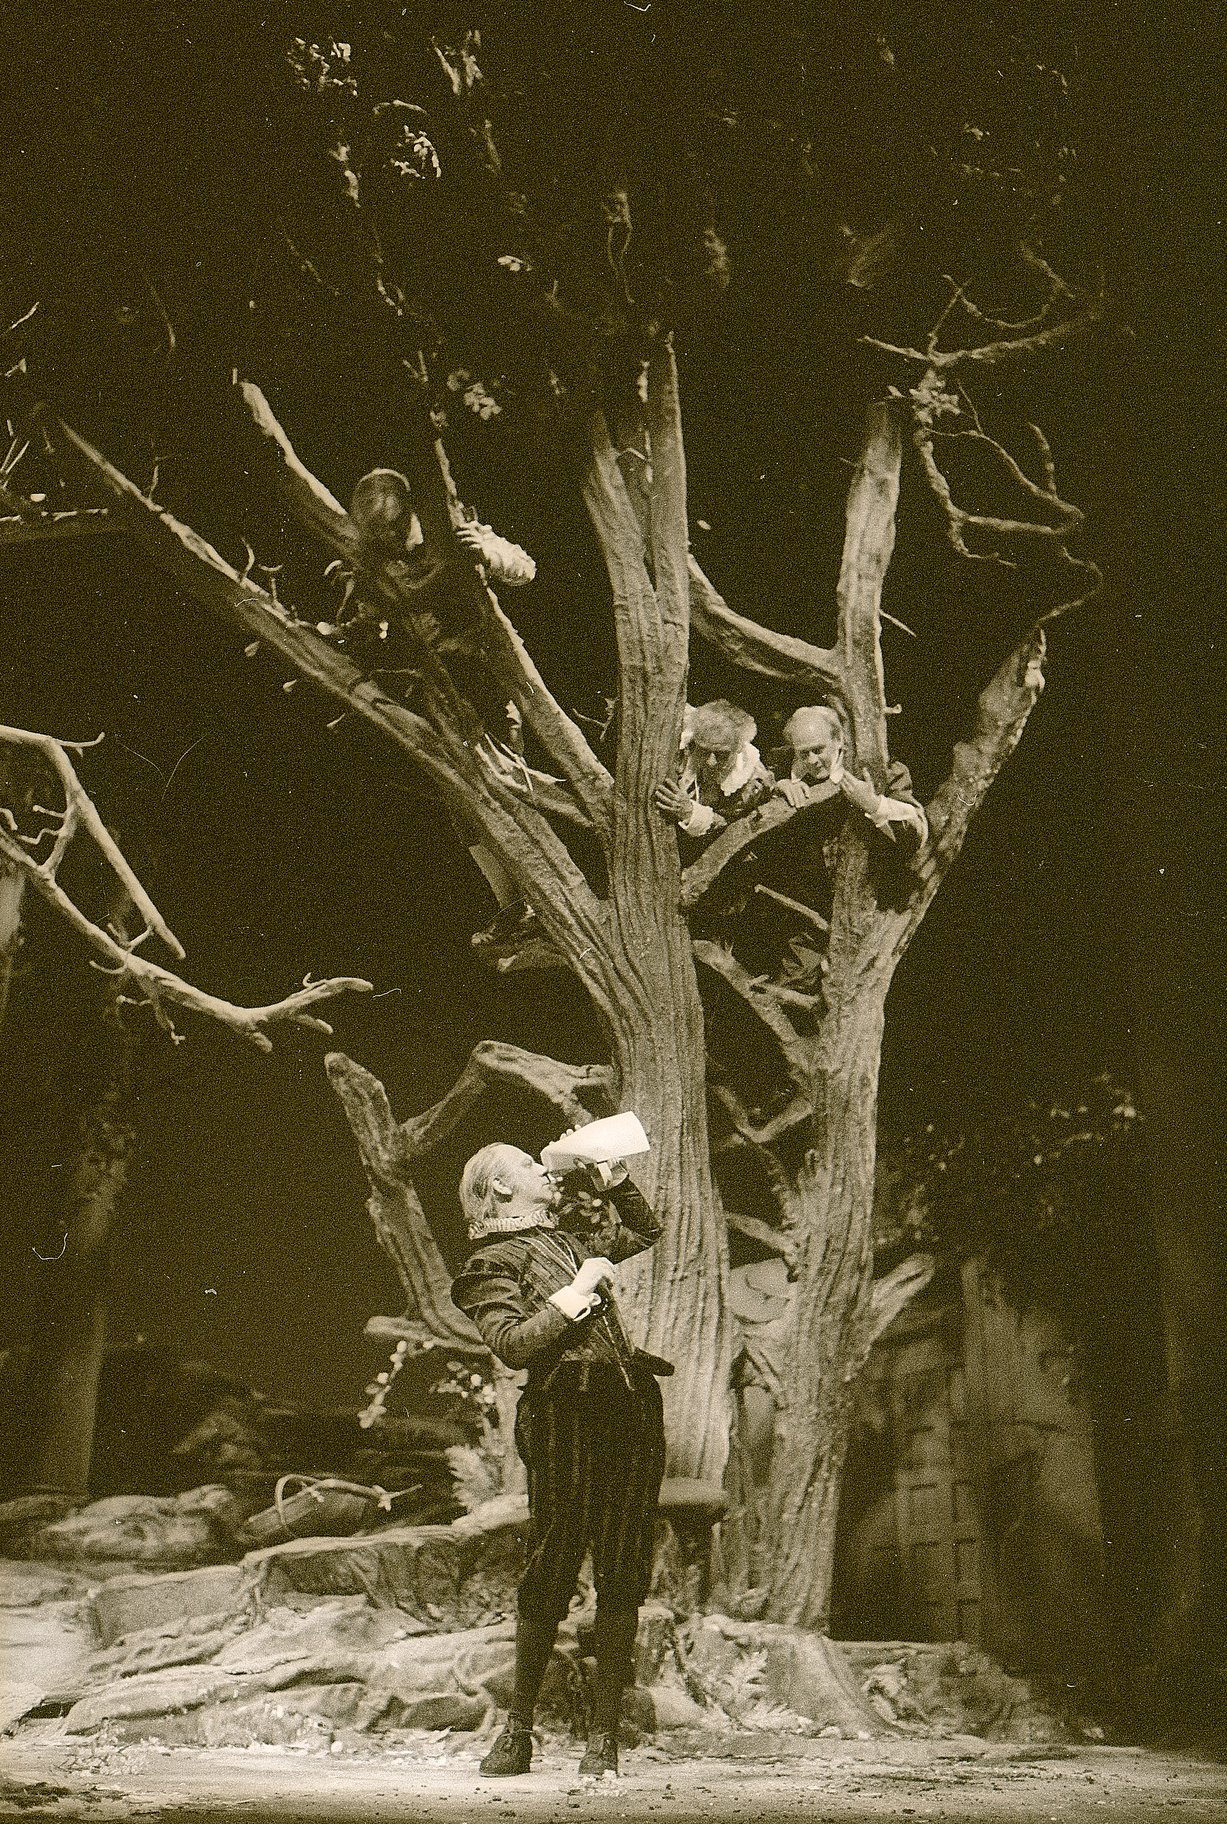 Malvolio inspects a letter while standing at the bottom of a tree in formal dress. He is watched by Sir Toby, Sir Andrew and Fabian who are all sitting in the branches of the tree in the 1983 production of Twelfth Night.